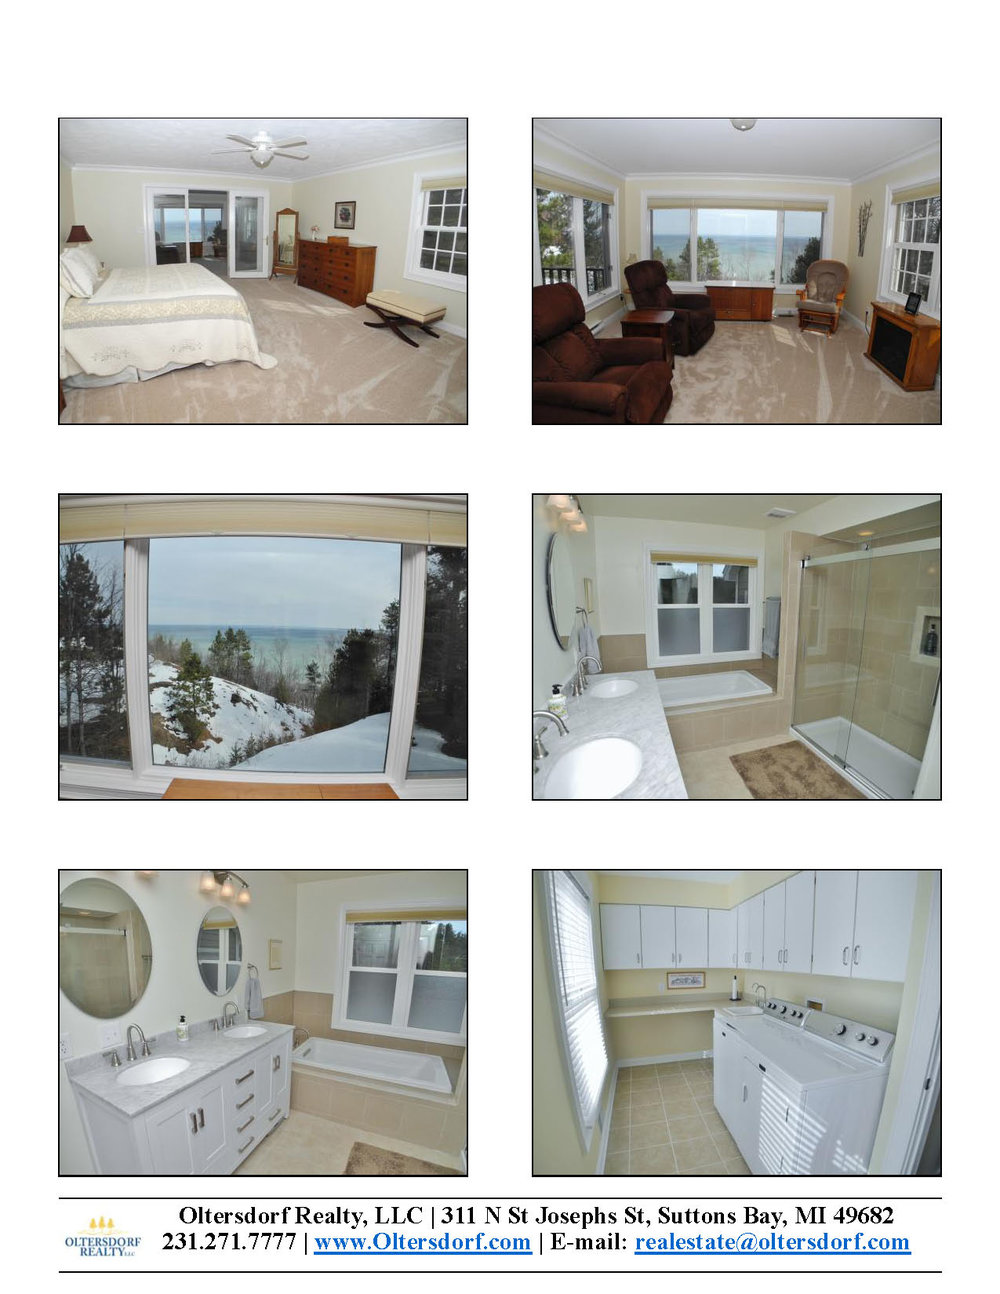 1771 S Cherry Blossom Lane, Suttons Bay Marketing Packet - Real Estate for sale by oltersdorf realty llc_Page_05.jpg